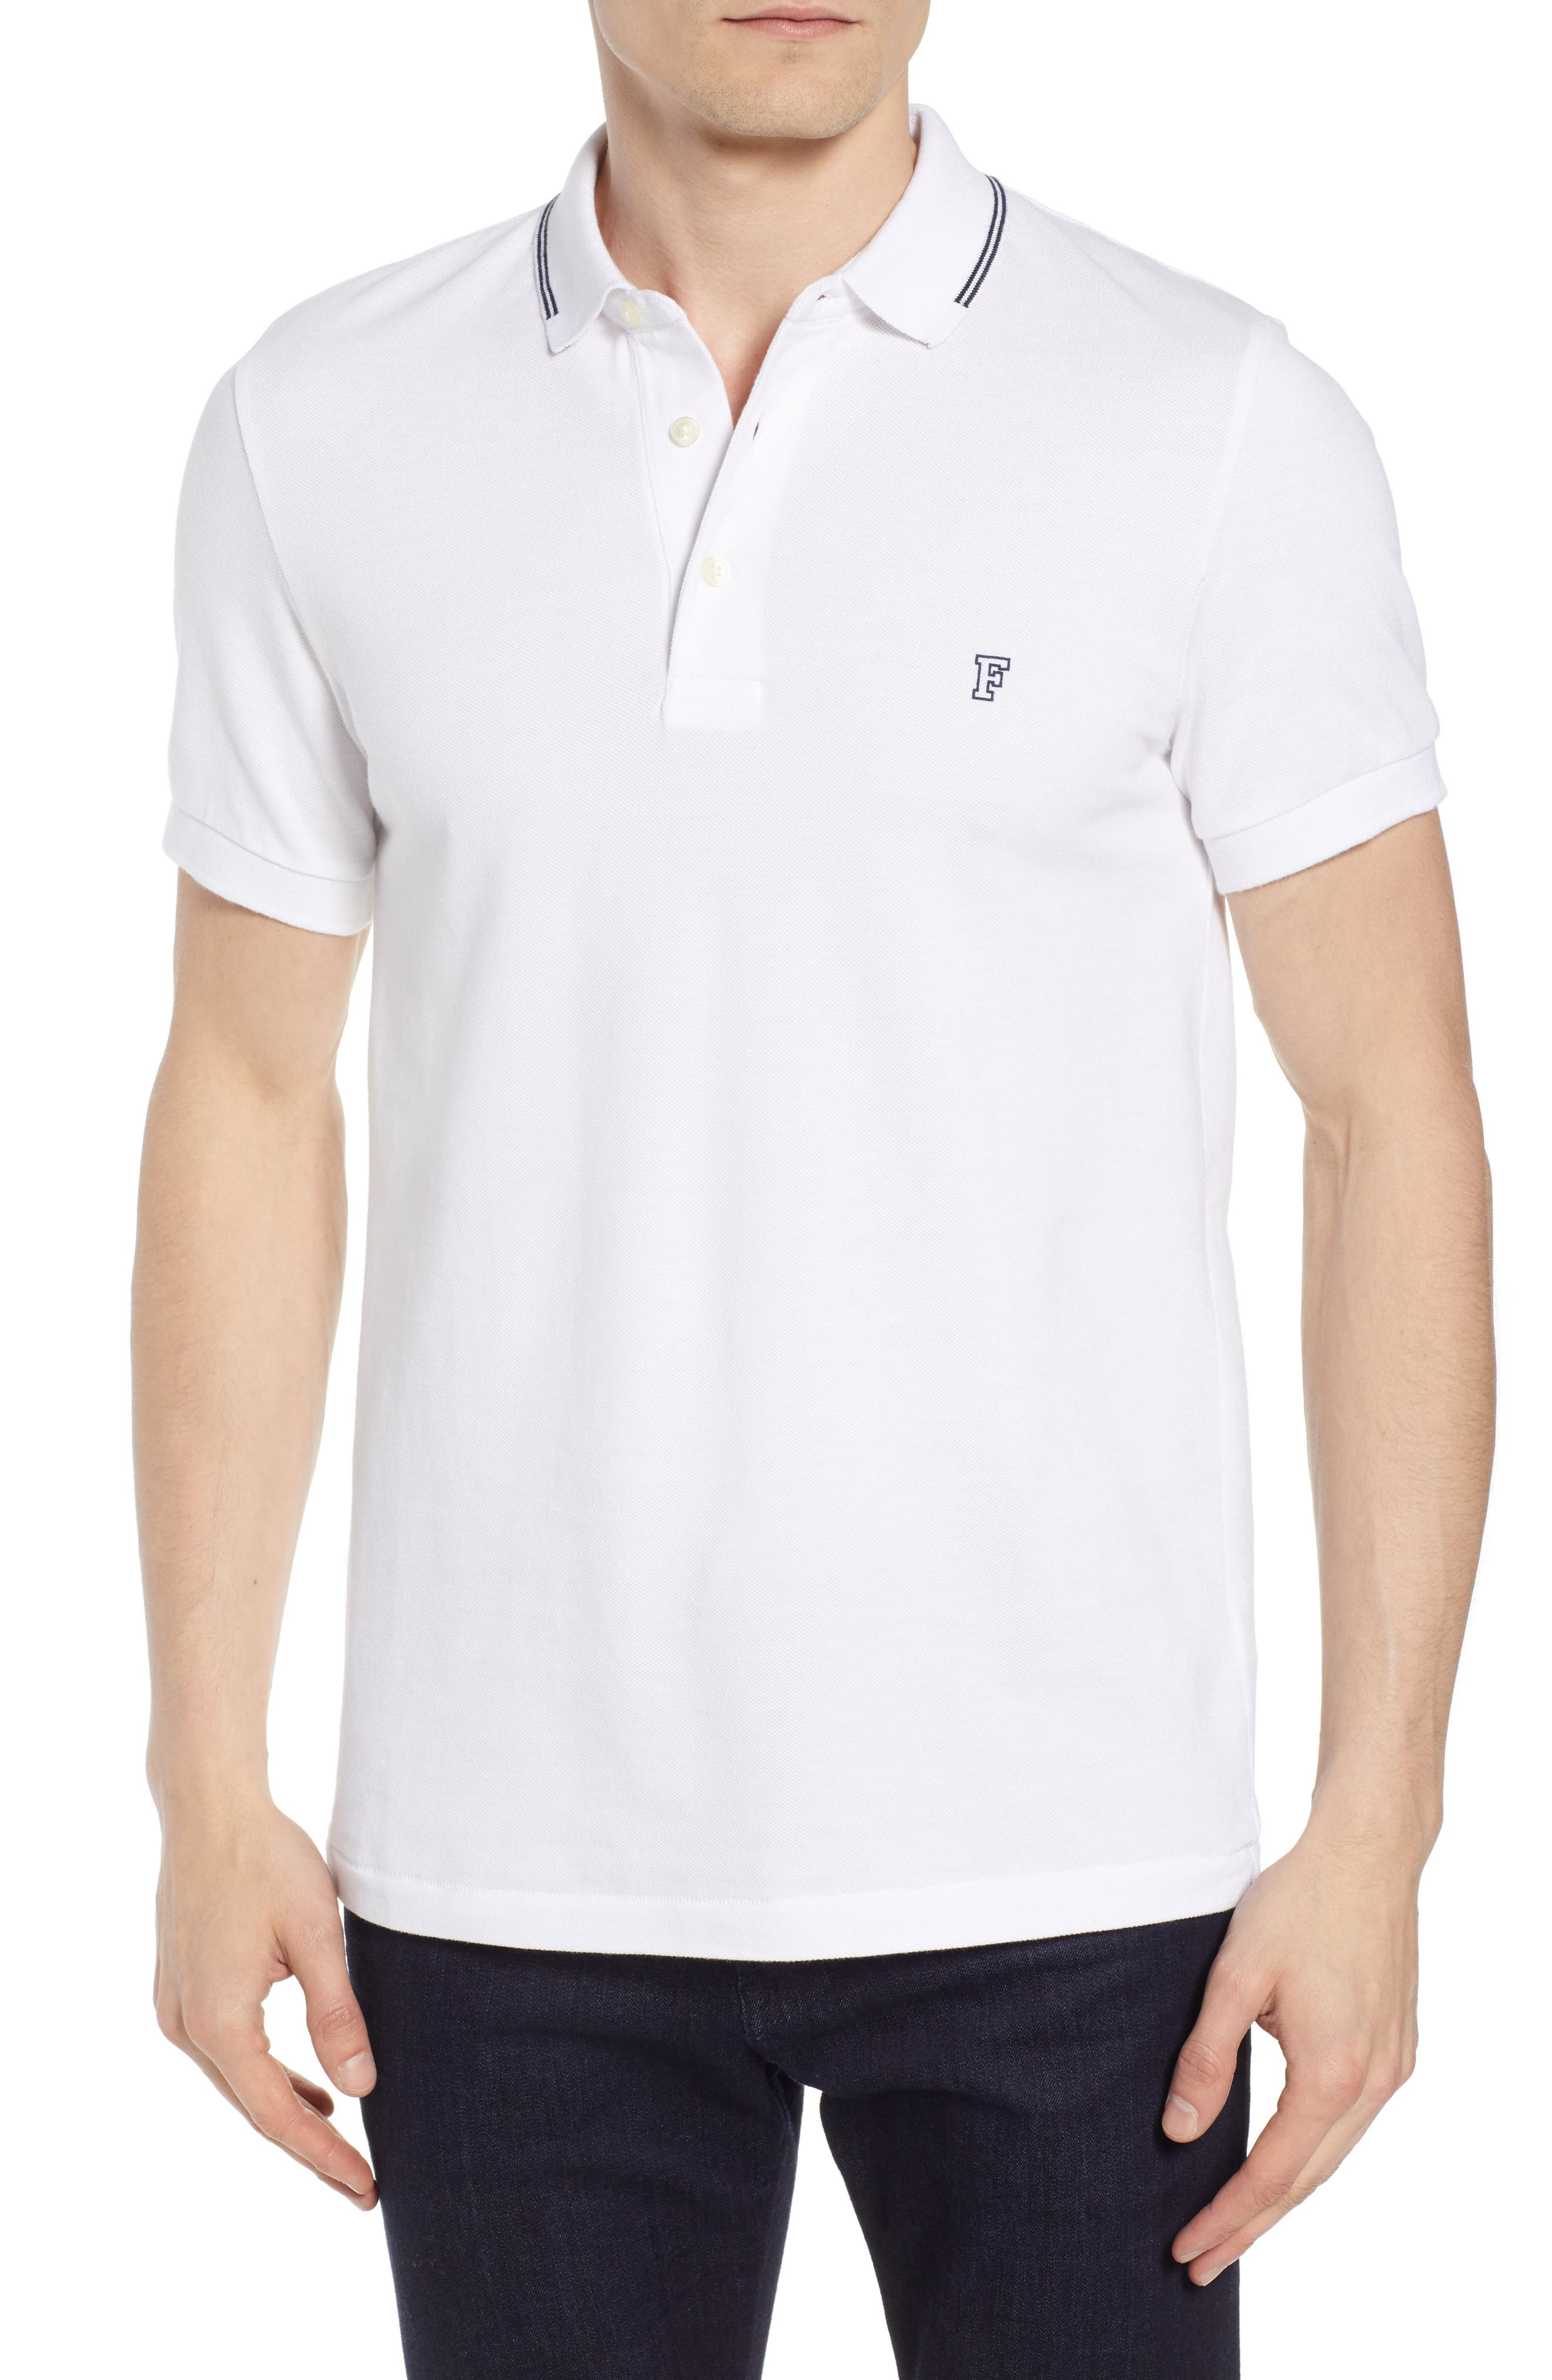 FRENCH CONNECTION, Summer Tipped Polo, Main thumbnail 1, color, 121